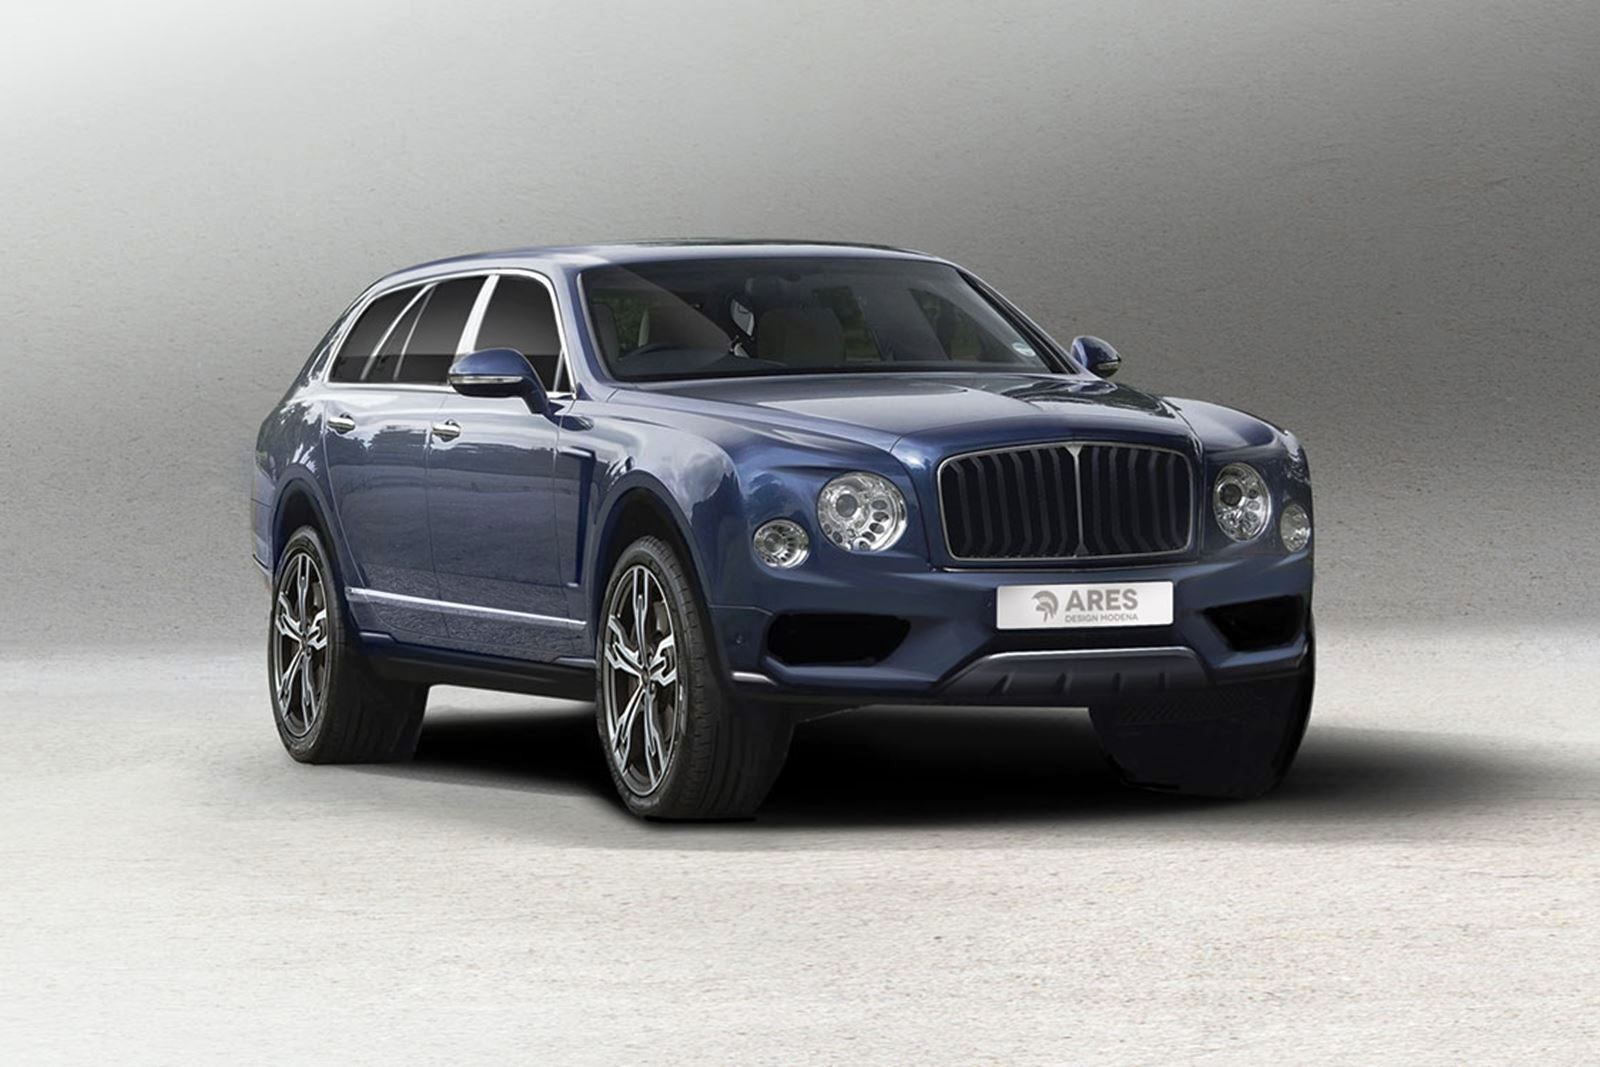 2019 Bentley Mulsanne photo - 3